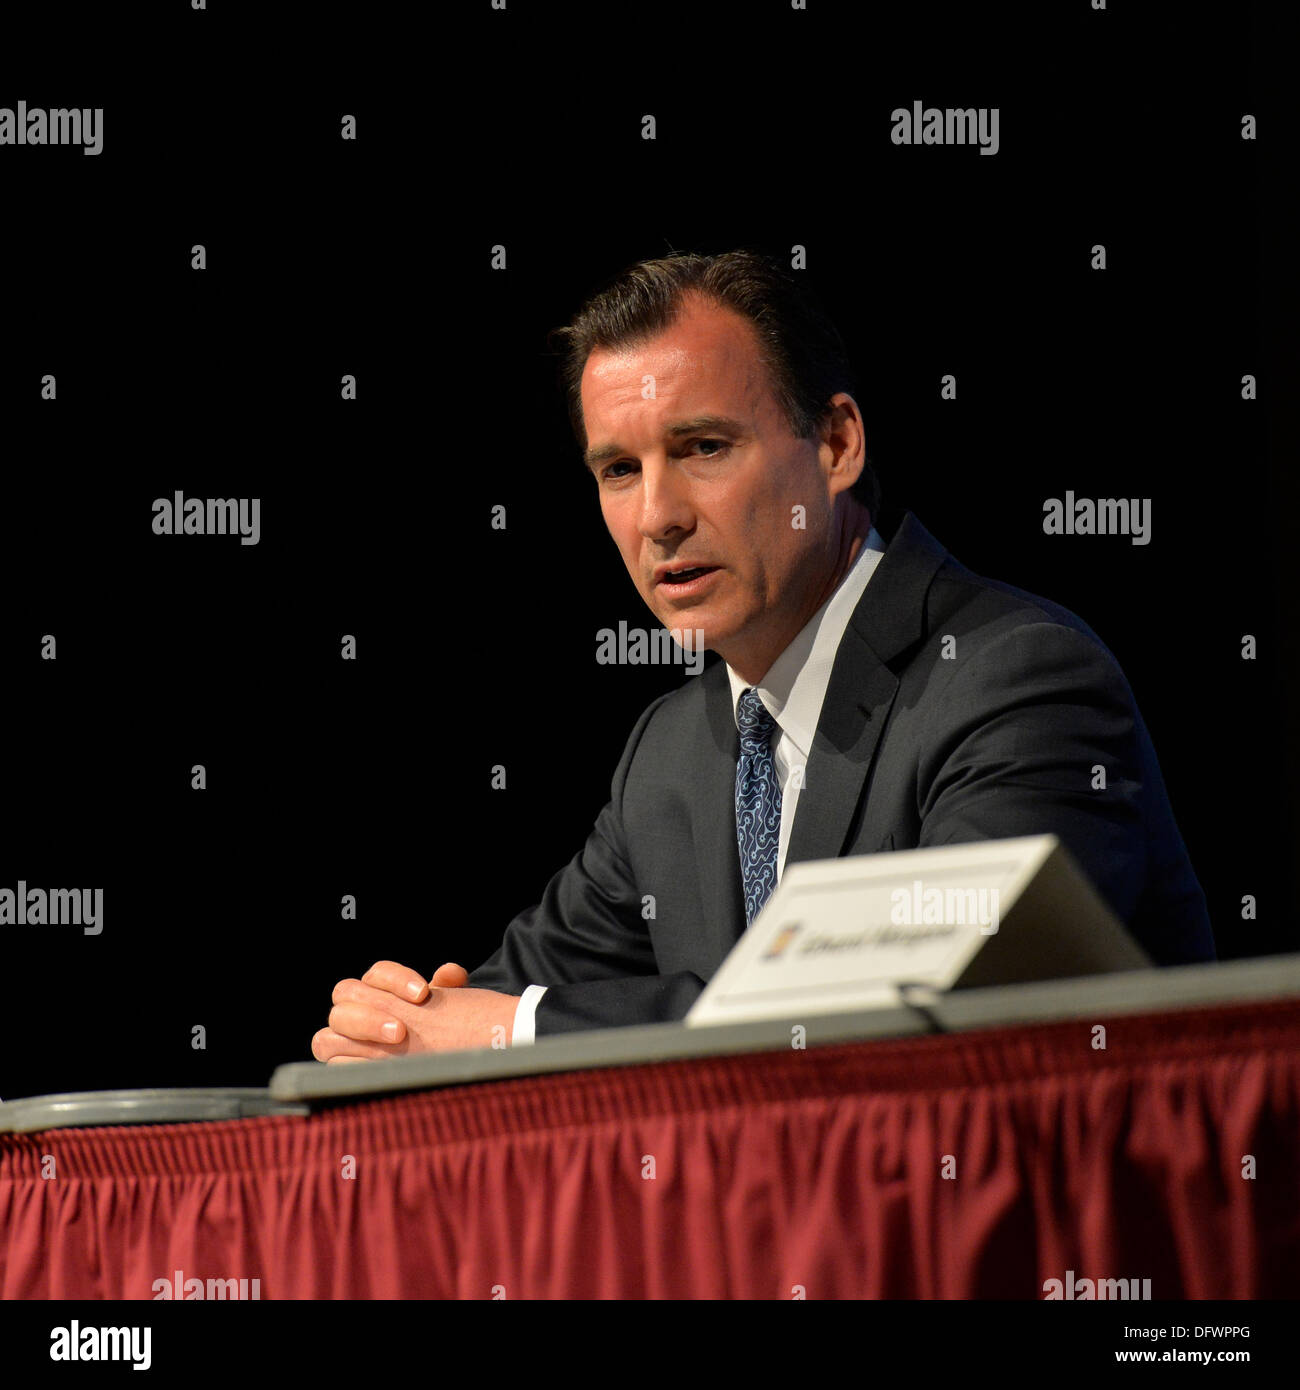 Old Westbury, New York, U.S. 8th October 2013. Democrat THOMAS SUOZZI, the former Nassau County Executive, debates with current Nassau County Executive Mangano at debate hosted by the Nassau County Village Officials Association, representing 64 incorporated villages with 450,000 residents, as the opponents face a rematch in the 2013 November elections. Credit:  Ann E Parry/Alamy Live News - Stock Image